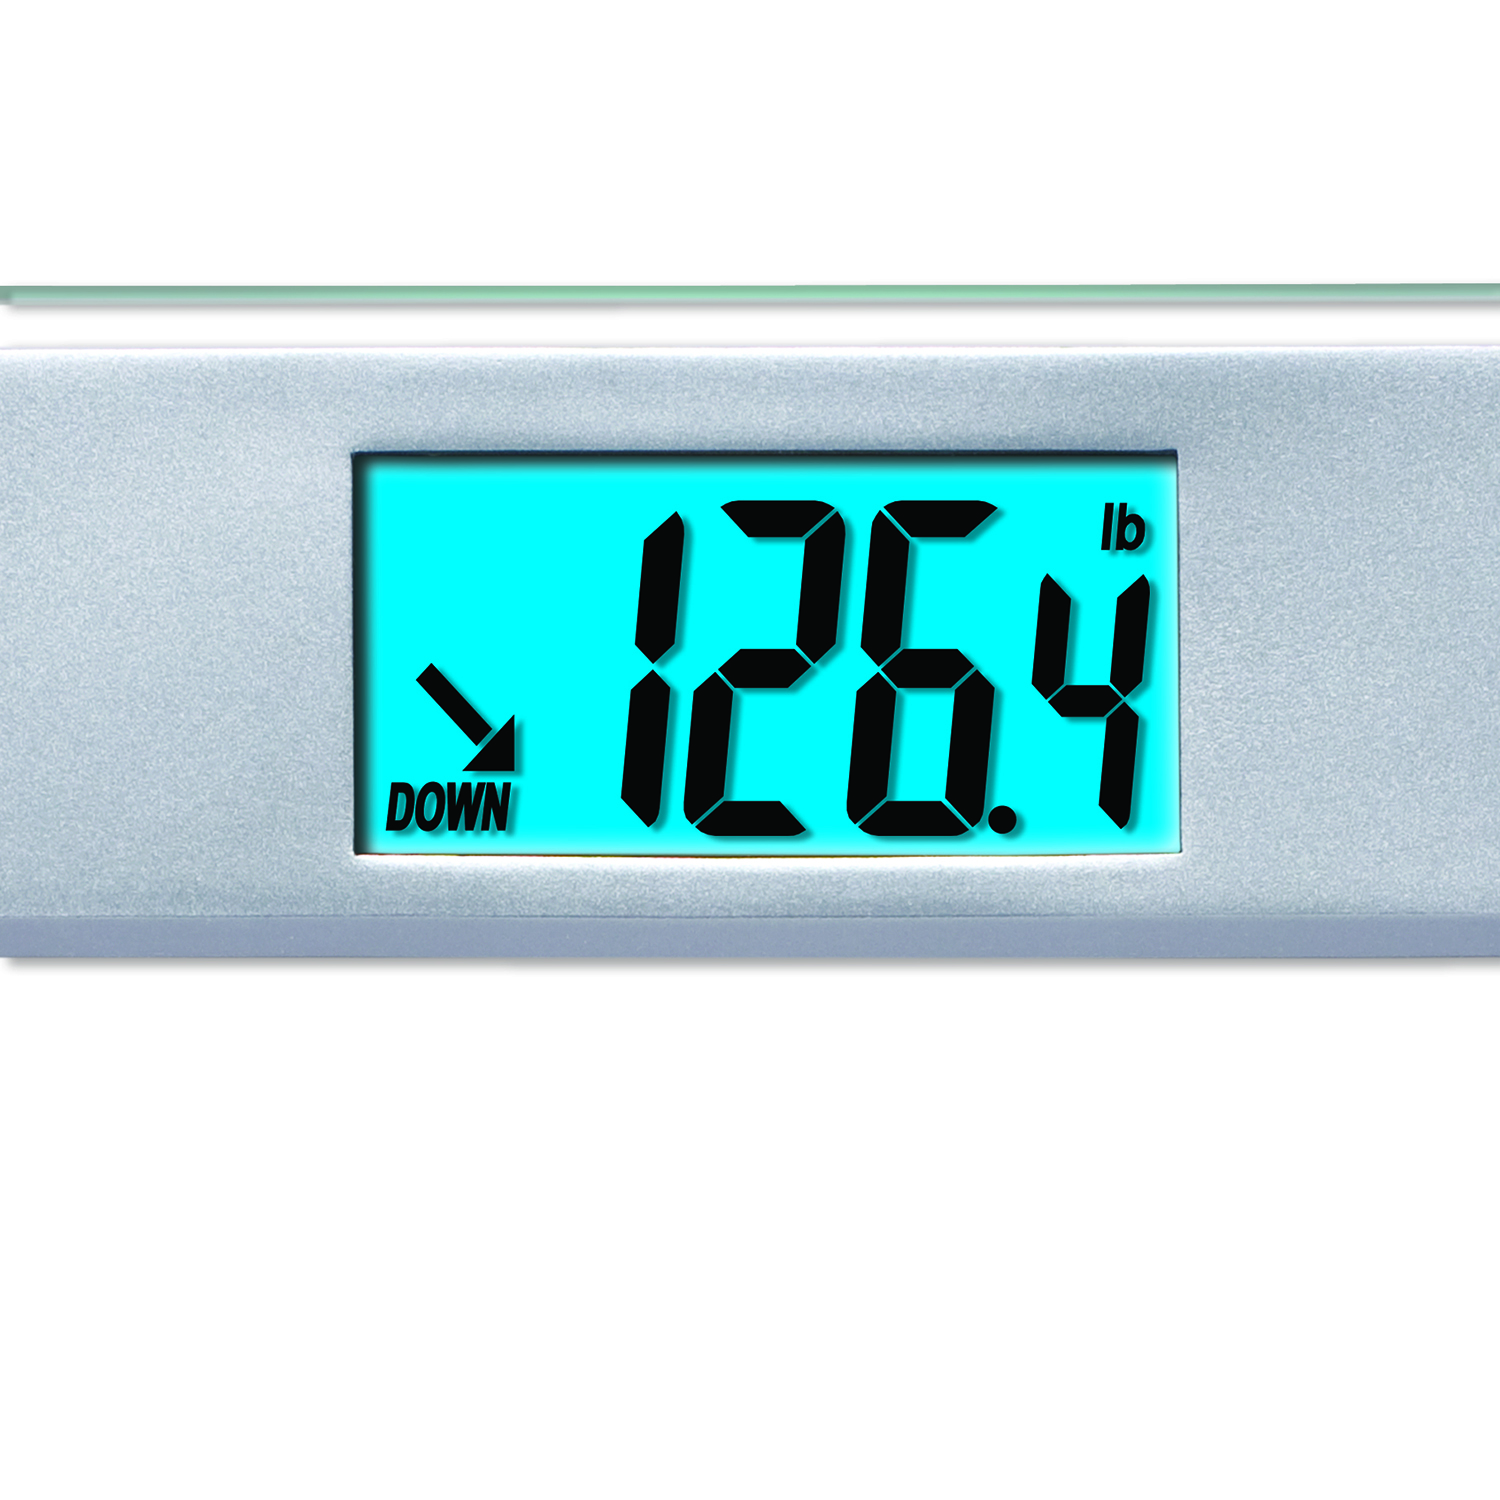 Taylor 7595 Digital Glass Bathroom Scale with 2 User Memory ...